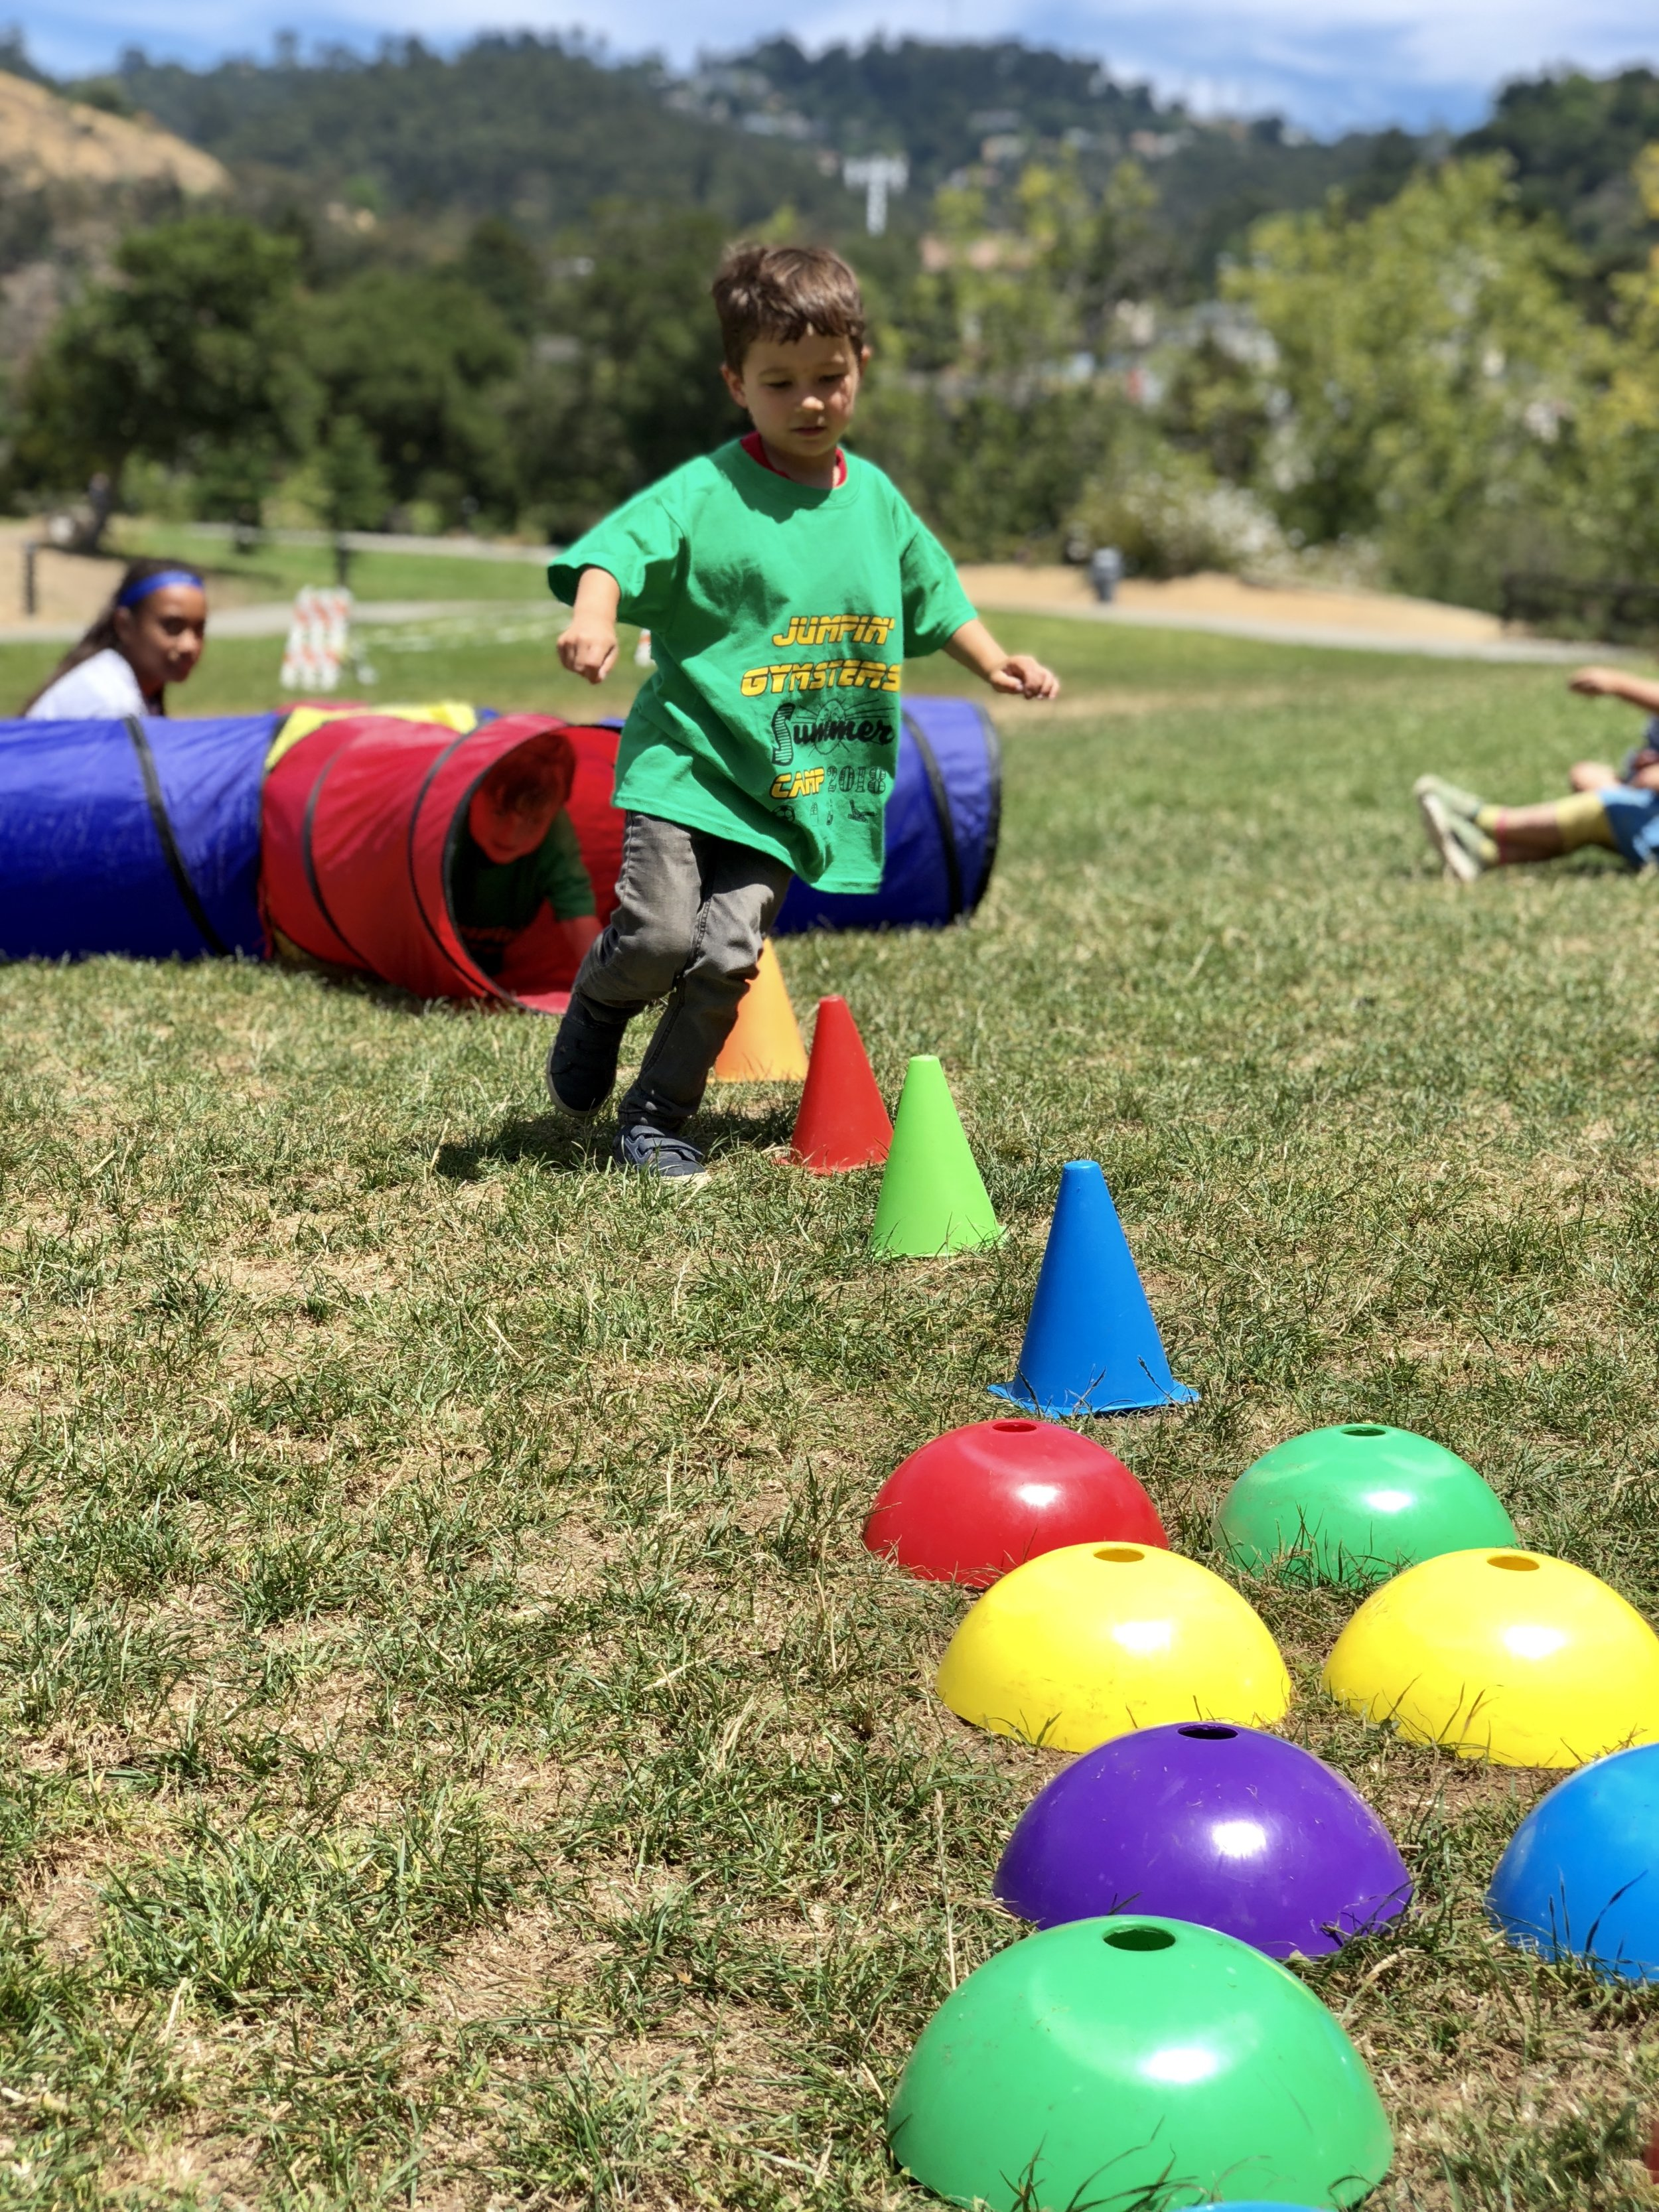 and Ninja Warrior Training! - OBSTACLE COURSES THAT CHALLENGE SPEED, AGILITY, STRENGTH AND ENDURANCE. We'll sprint through cones, climb a wall, jump over hurdles and crawl through moving tunnels!